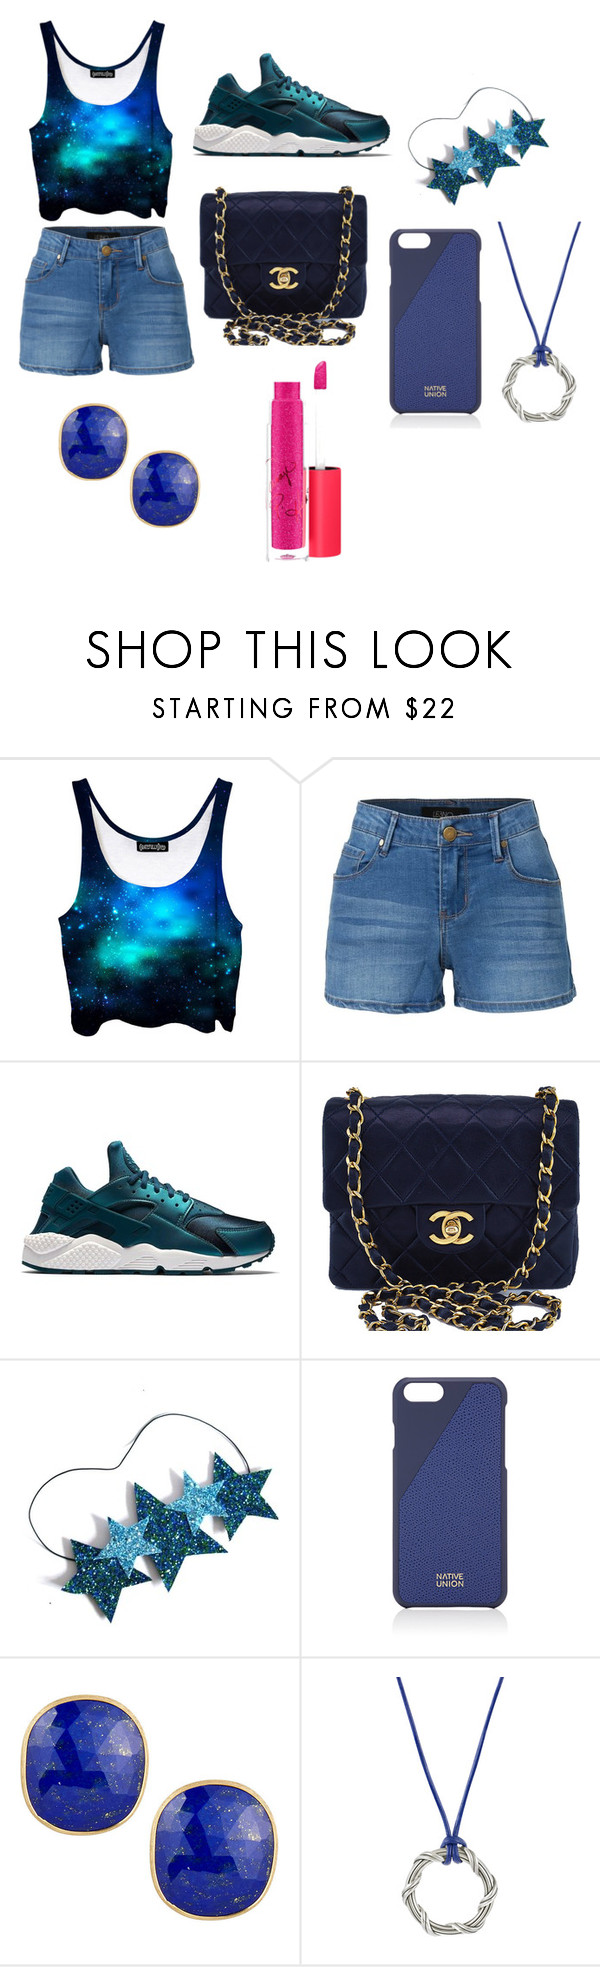 """LAST DAY OF MIDDLE SCHOOL"" by bribri2004 ❤ liked on Polyvore featuring LE3NO, NIKE, Chanel, Native Union, Marco Bicego, Bling Jewelry and MAC Cosmetics"